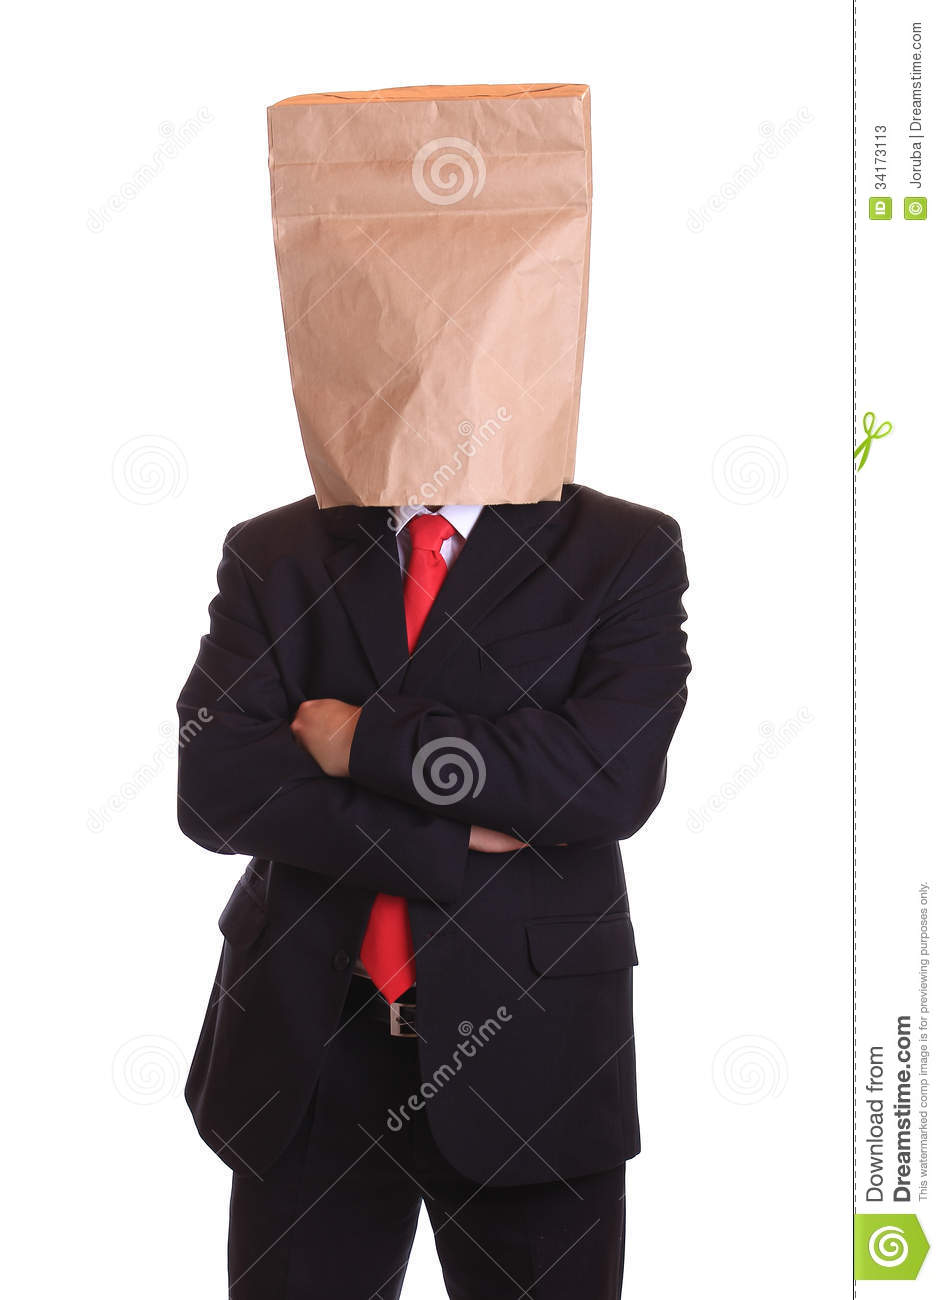 the back pack during all the compartment fella essay